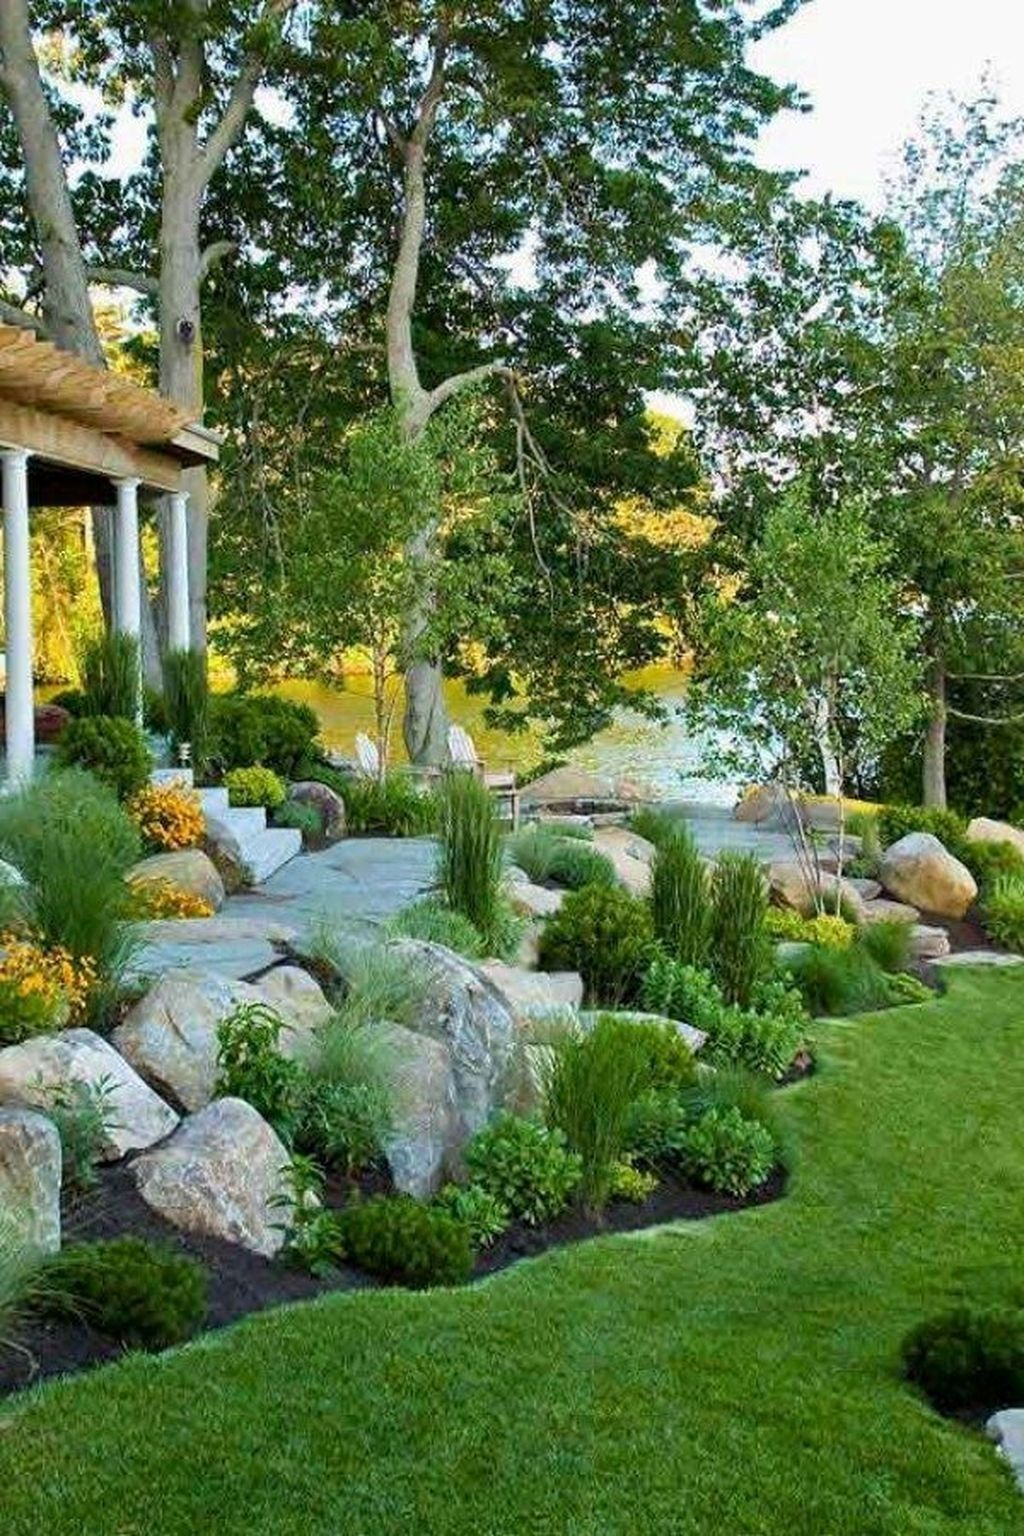 Gartengestaltung Ideen Bilder Steingarten 50 The Best Rock Garden Landscaping Ideas To Make A Beautiful